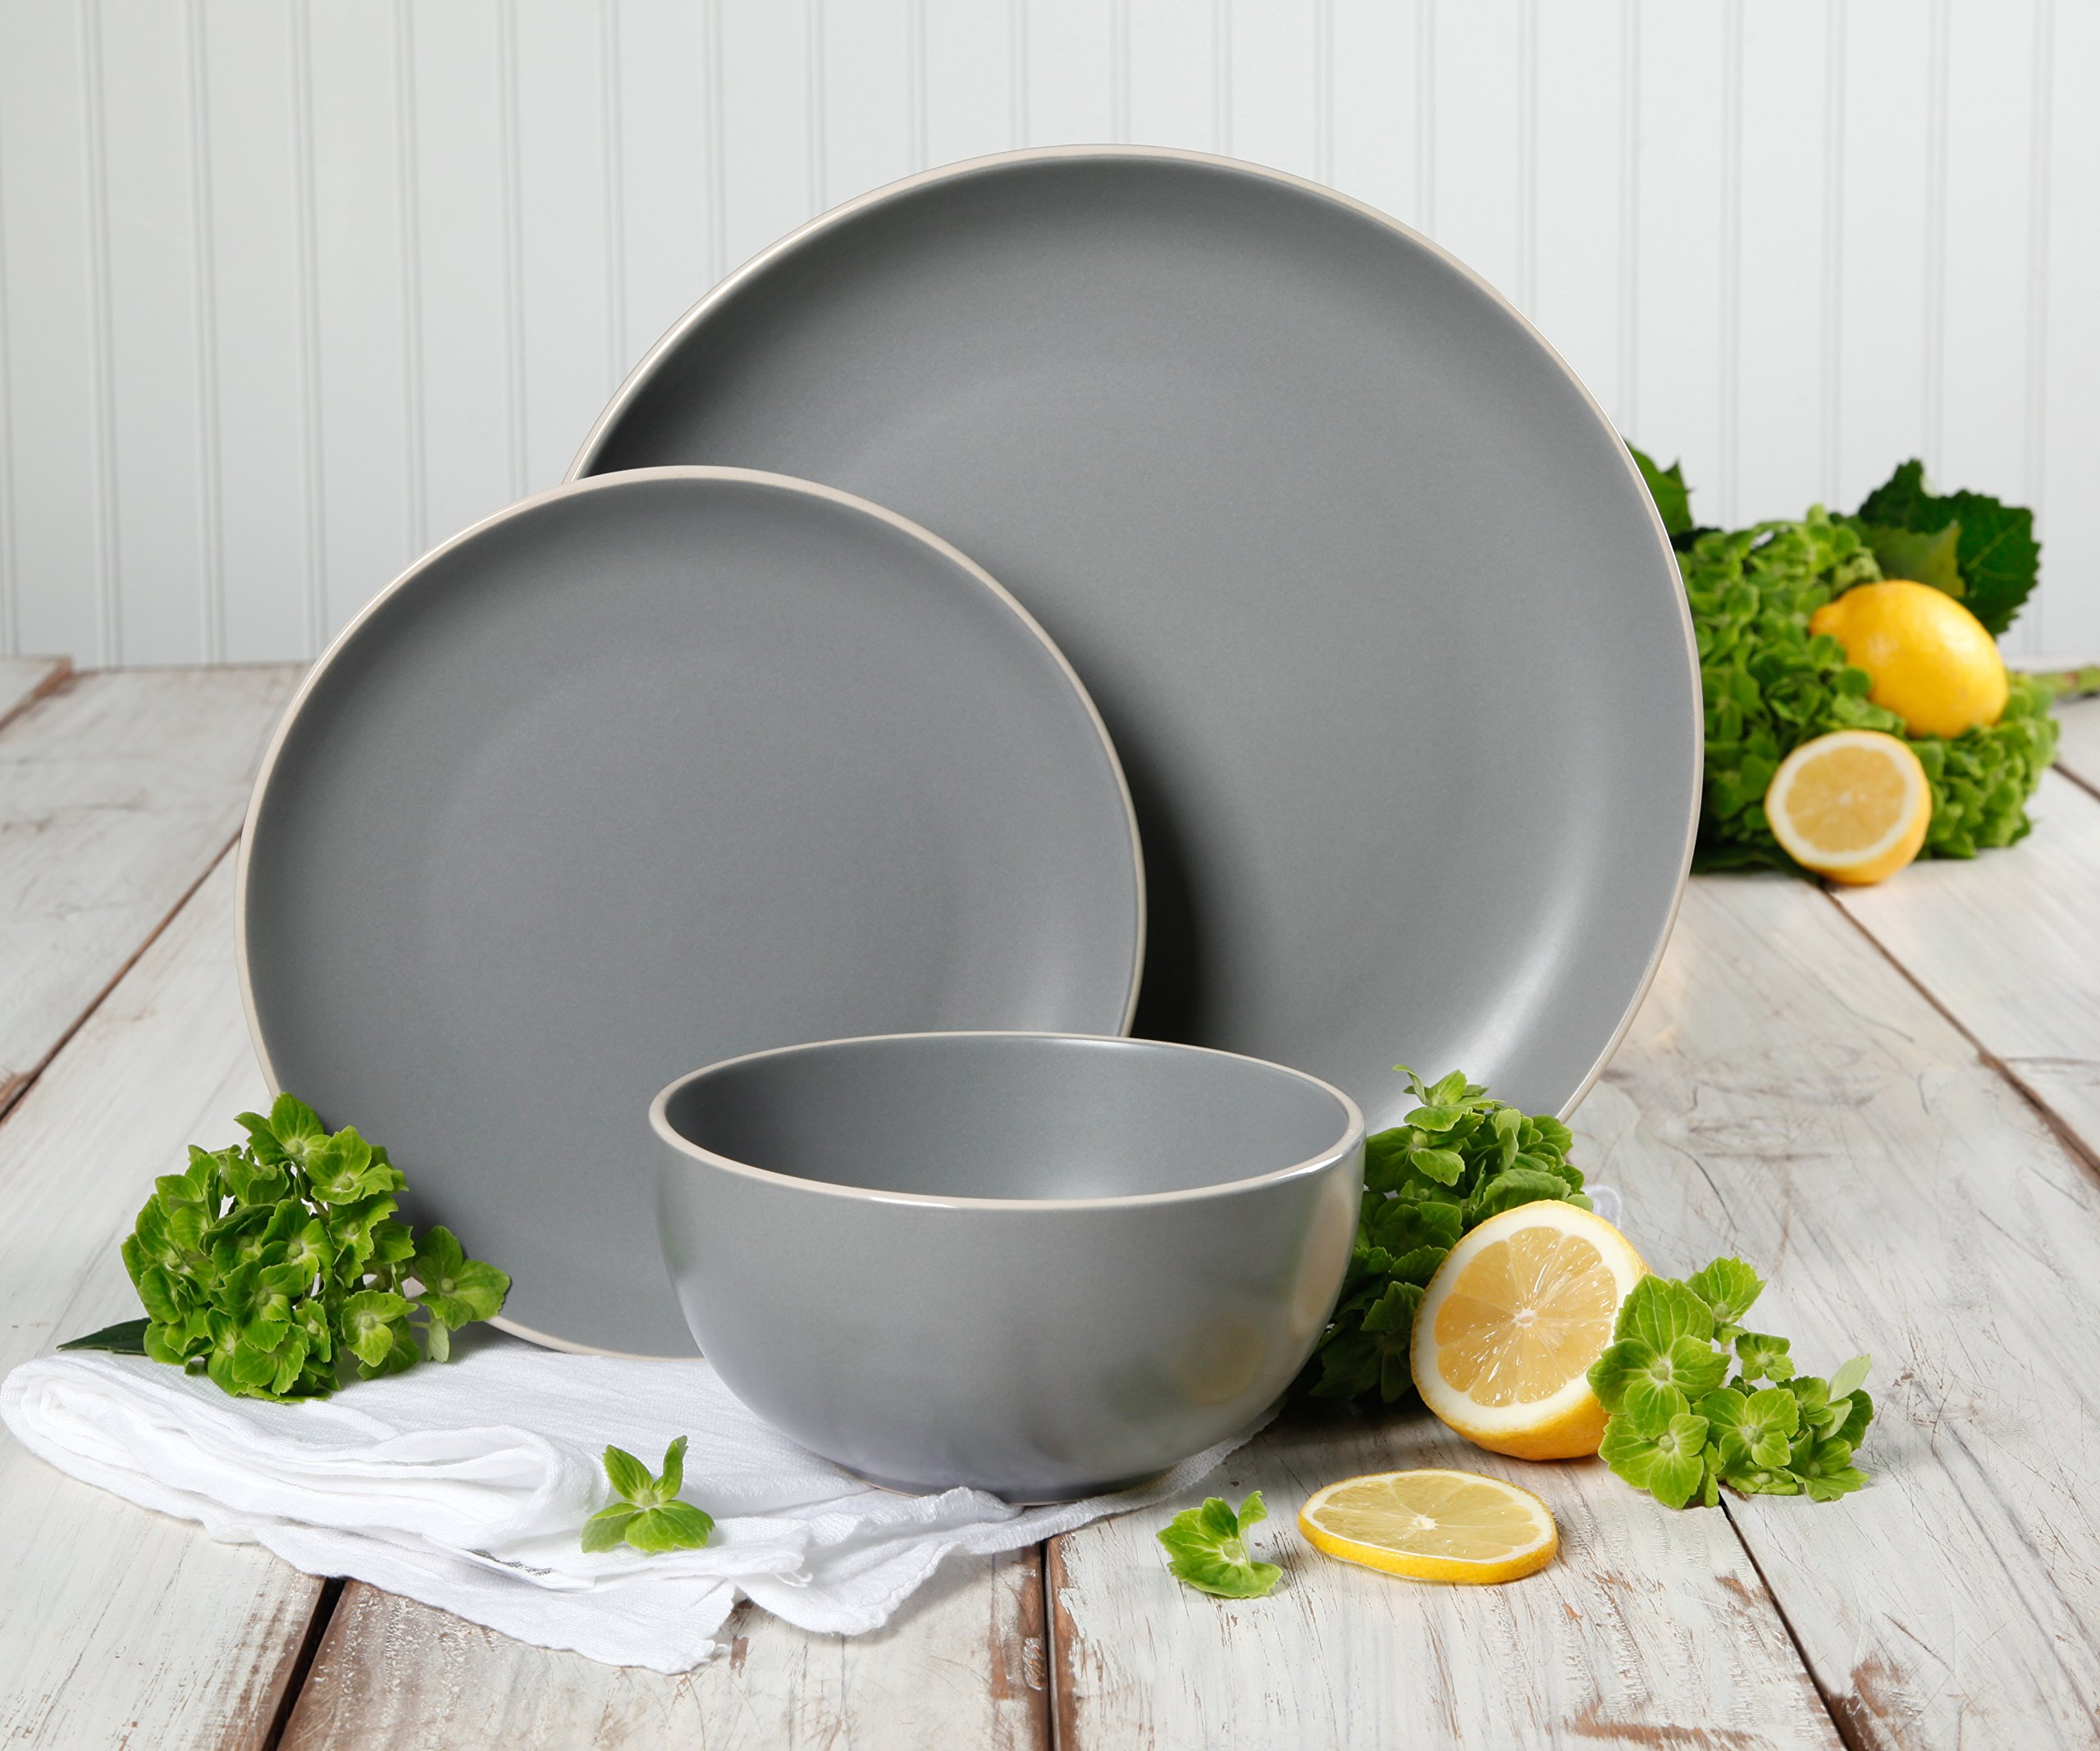 Gibson Home 114388.12RM Rockaway 12-Piece Dinnerware Set Service for 4, Grey Matte by Gibson Home (Image #5)